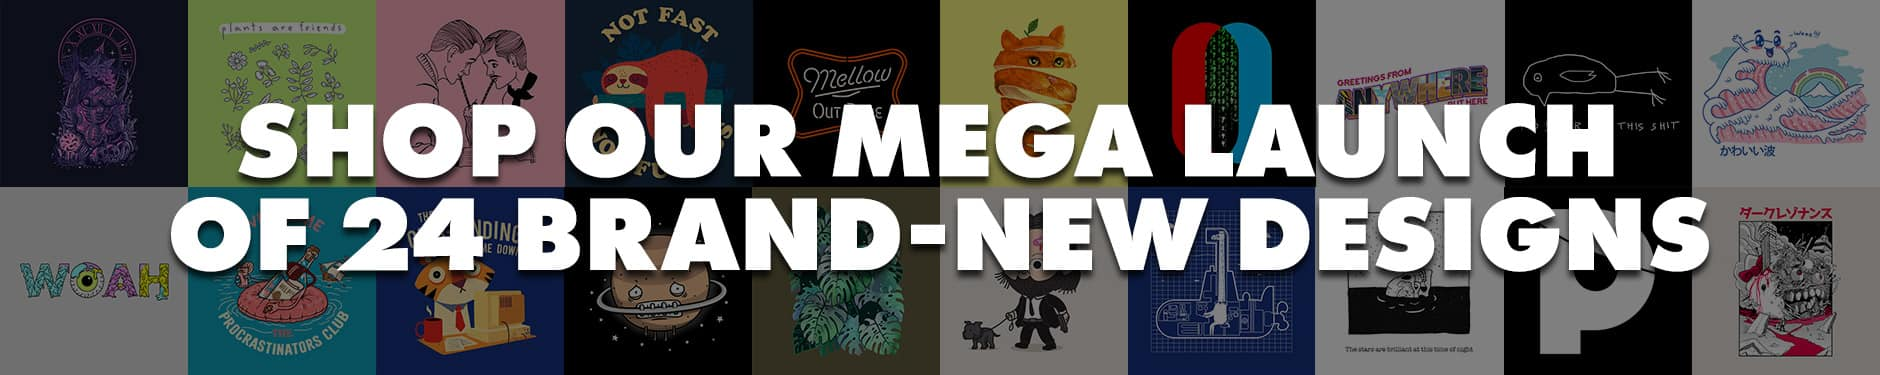 Shop our Mega Launch of new designs!